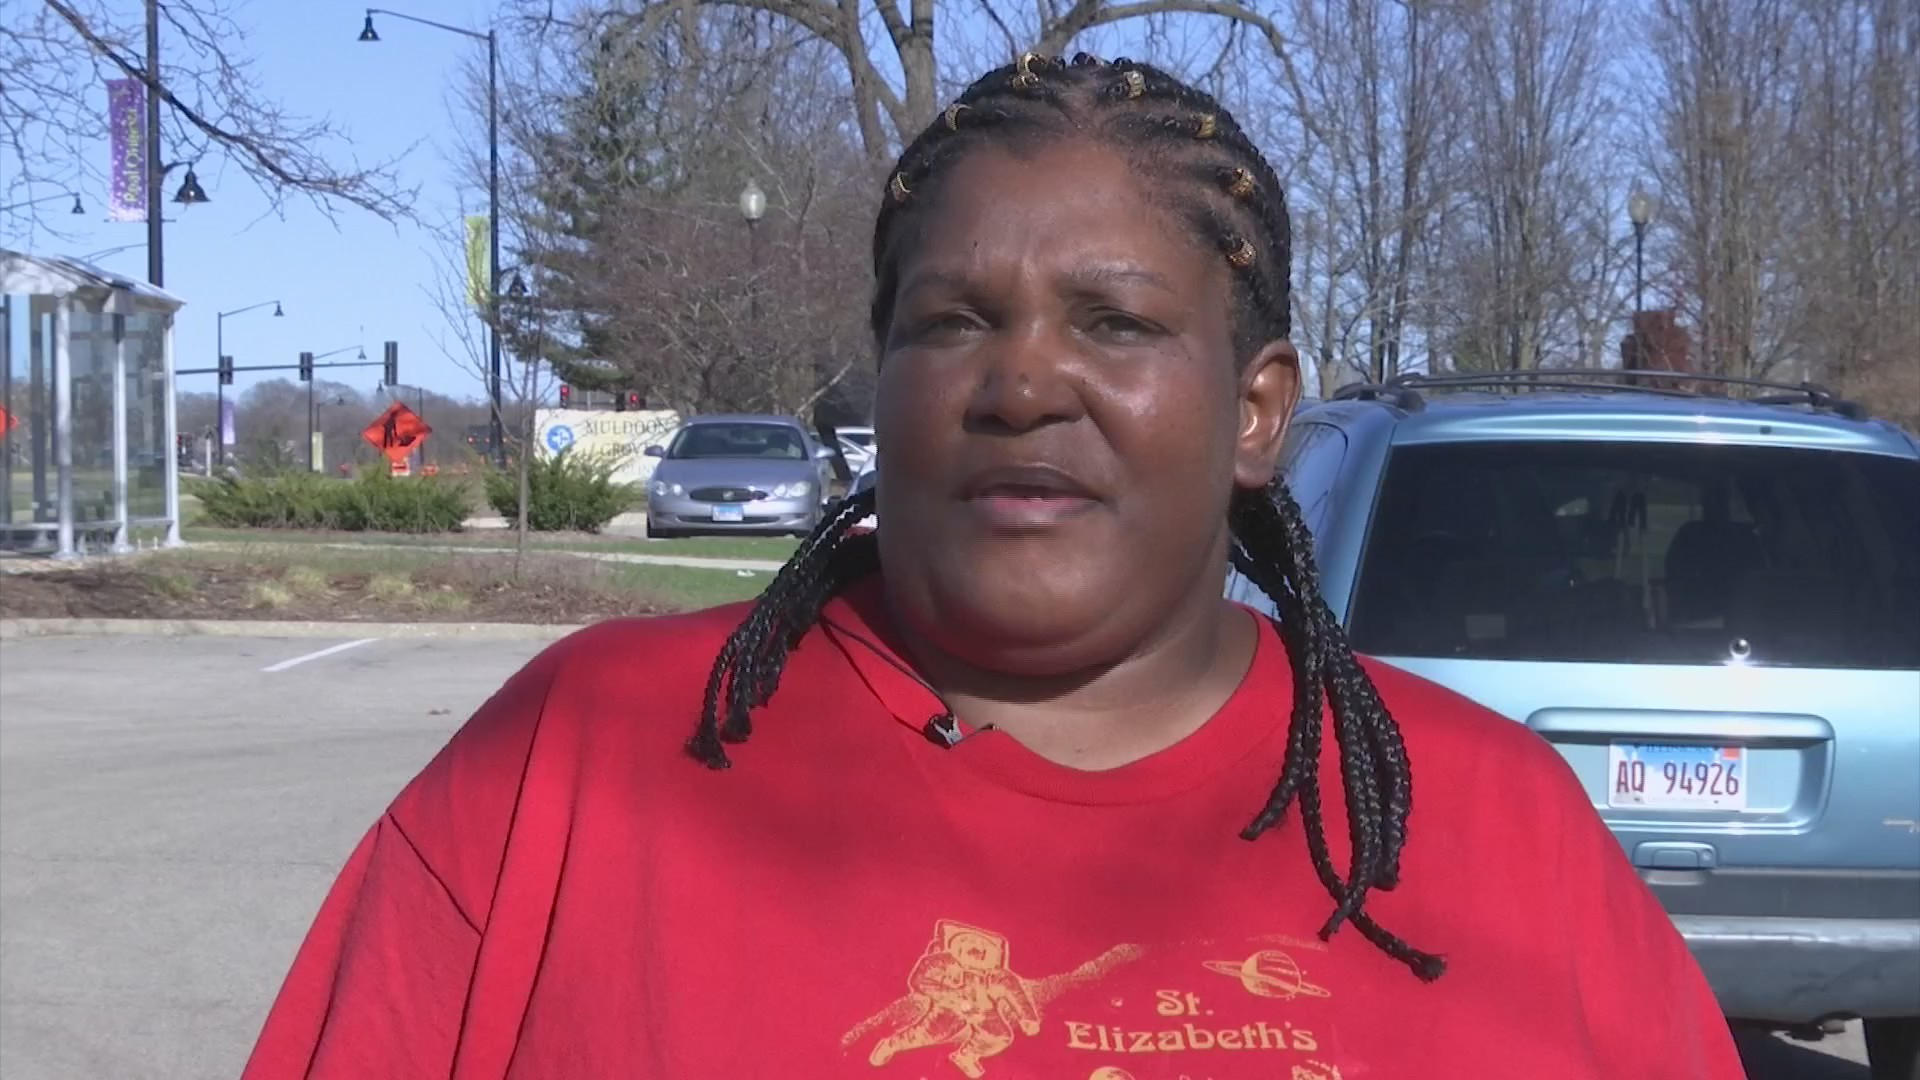 Close friend cherishes memories of the man found dead in a Rockford home